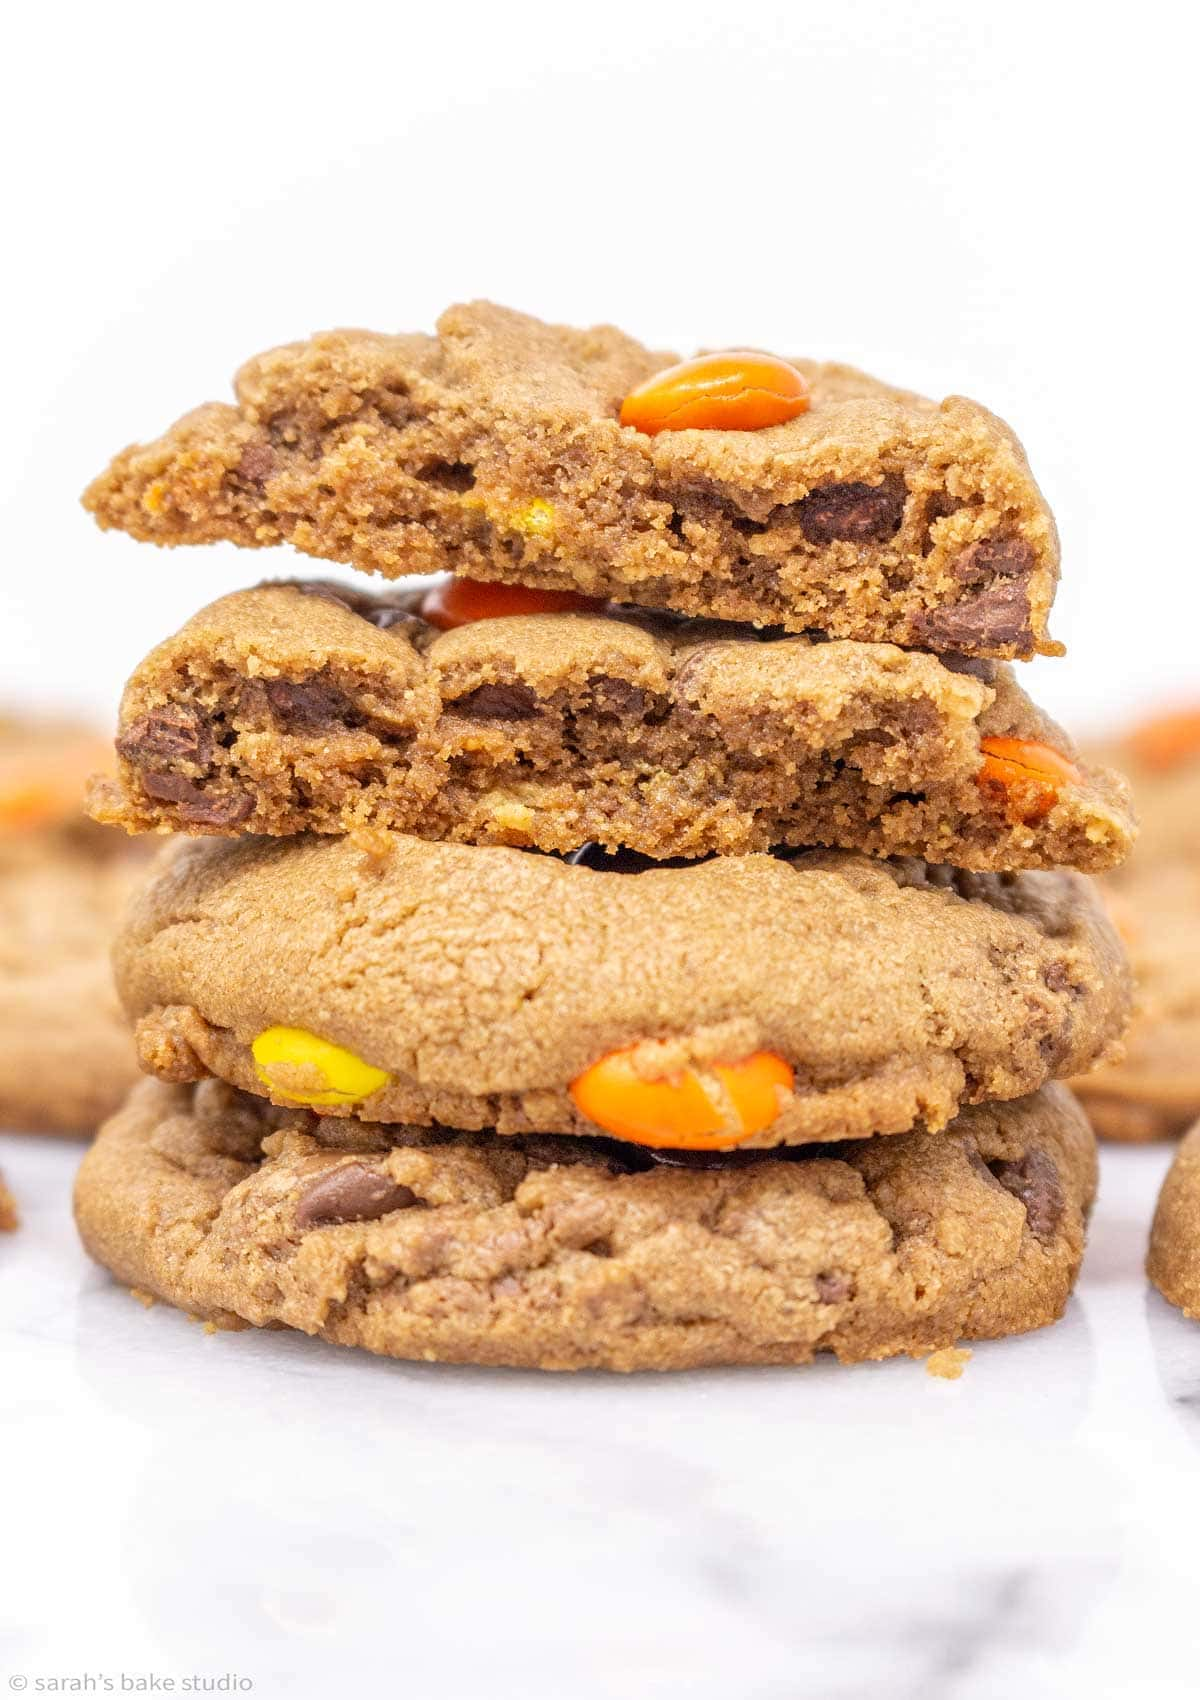 a stacked tower of Reese's chocolate peanut butter cookies with the top cookie broken in half with an inside view.